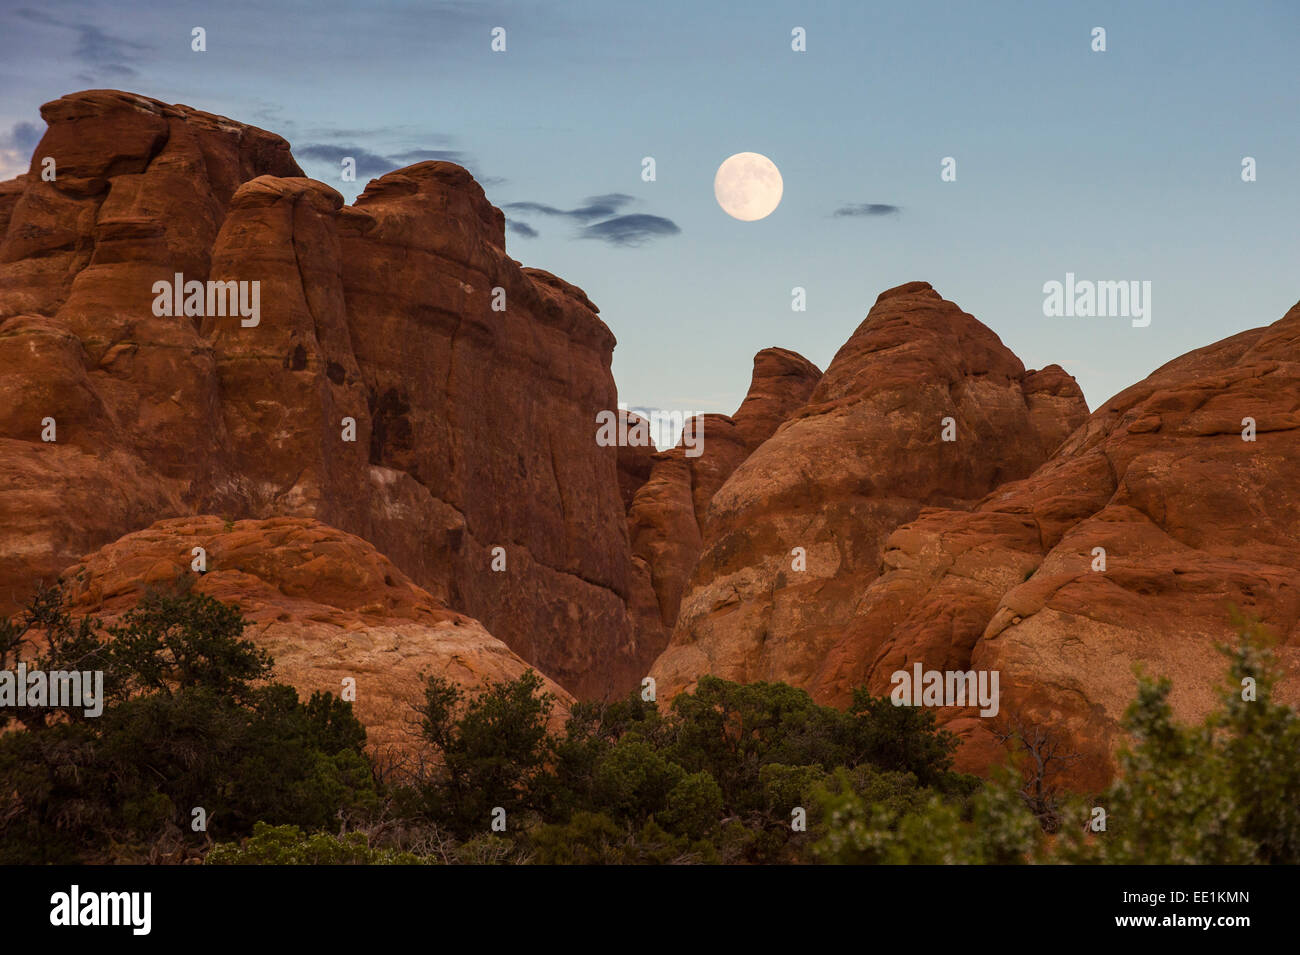 Full moon over Fiery Furnace, a maze like passageway, Arches National Park, Utah, United States of America, North - Stock Image